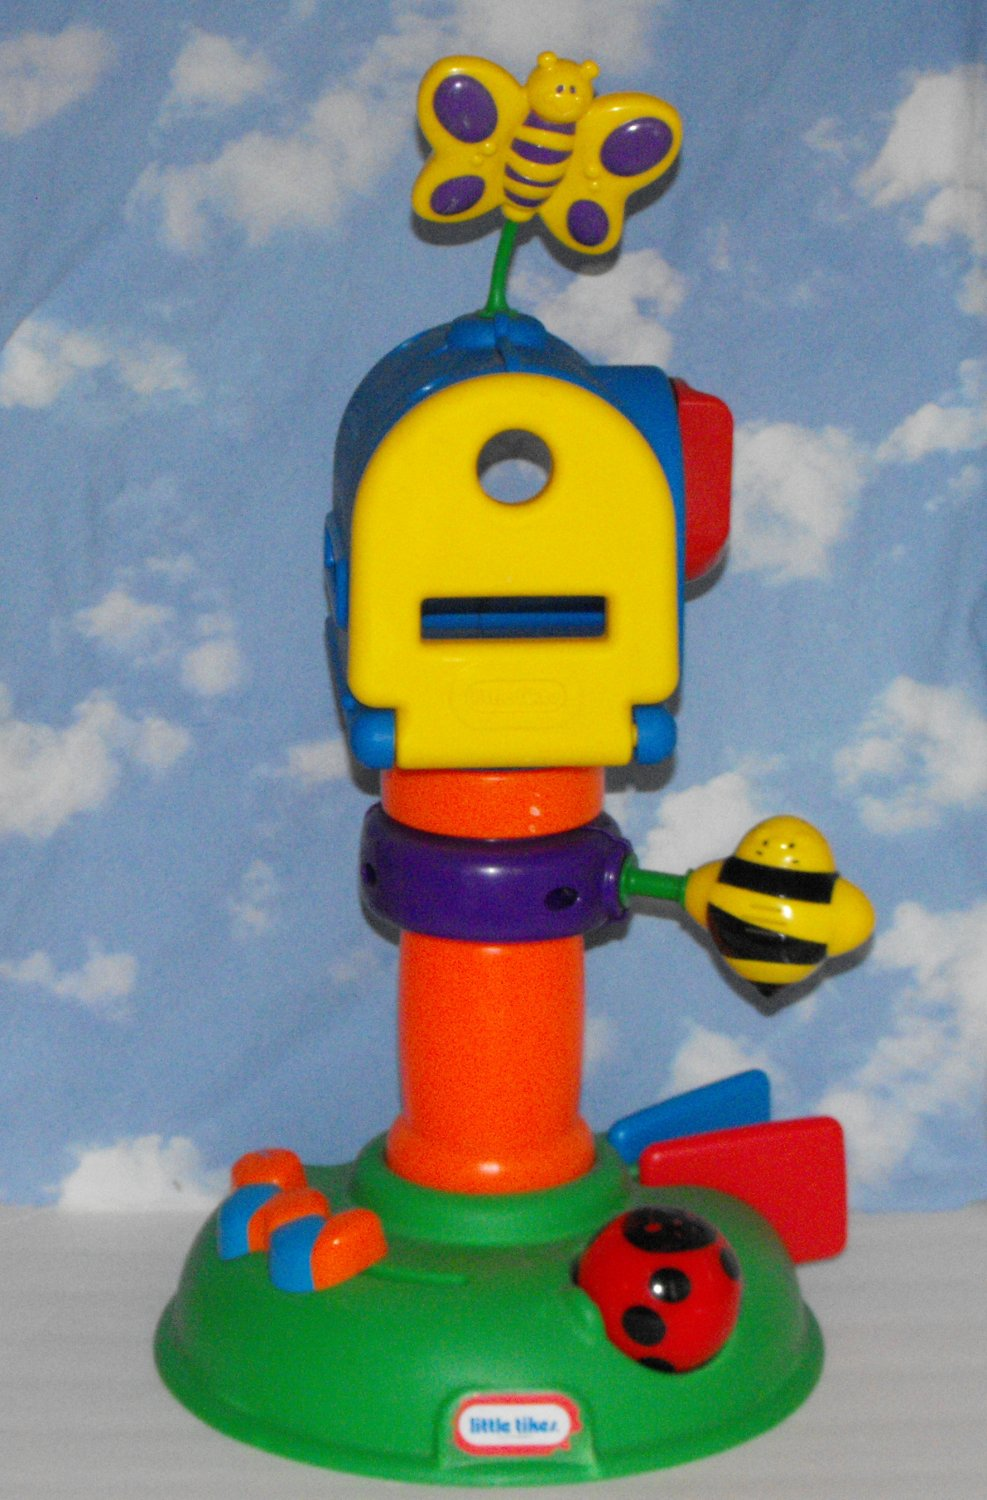 SOLD*awaiting feedback*Little Tikes Buzz About Mailbox